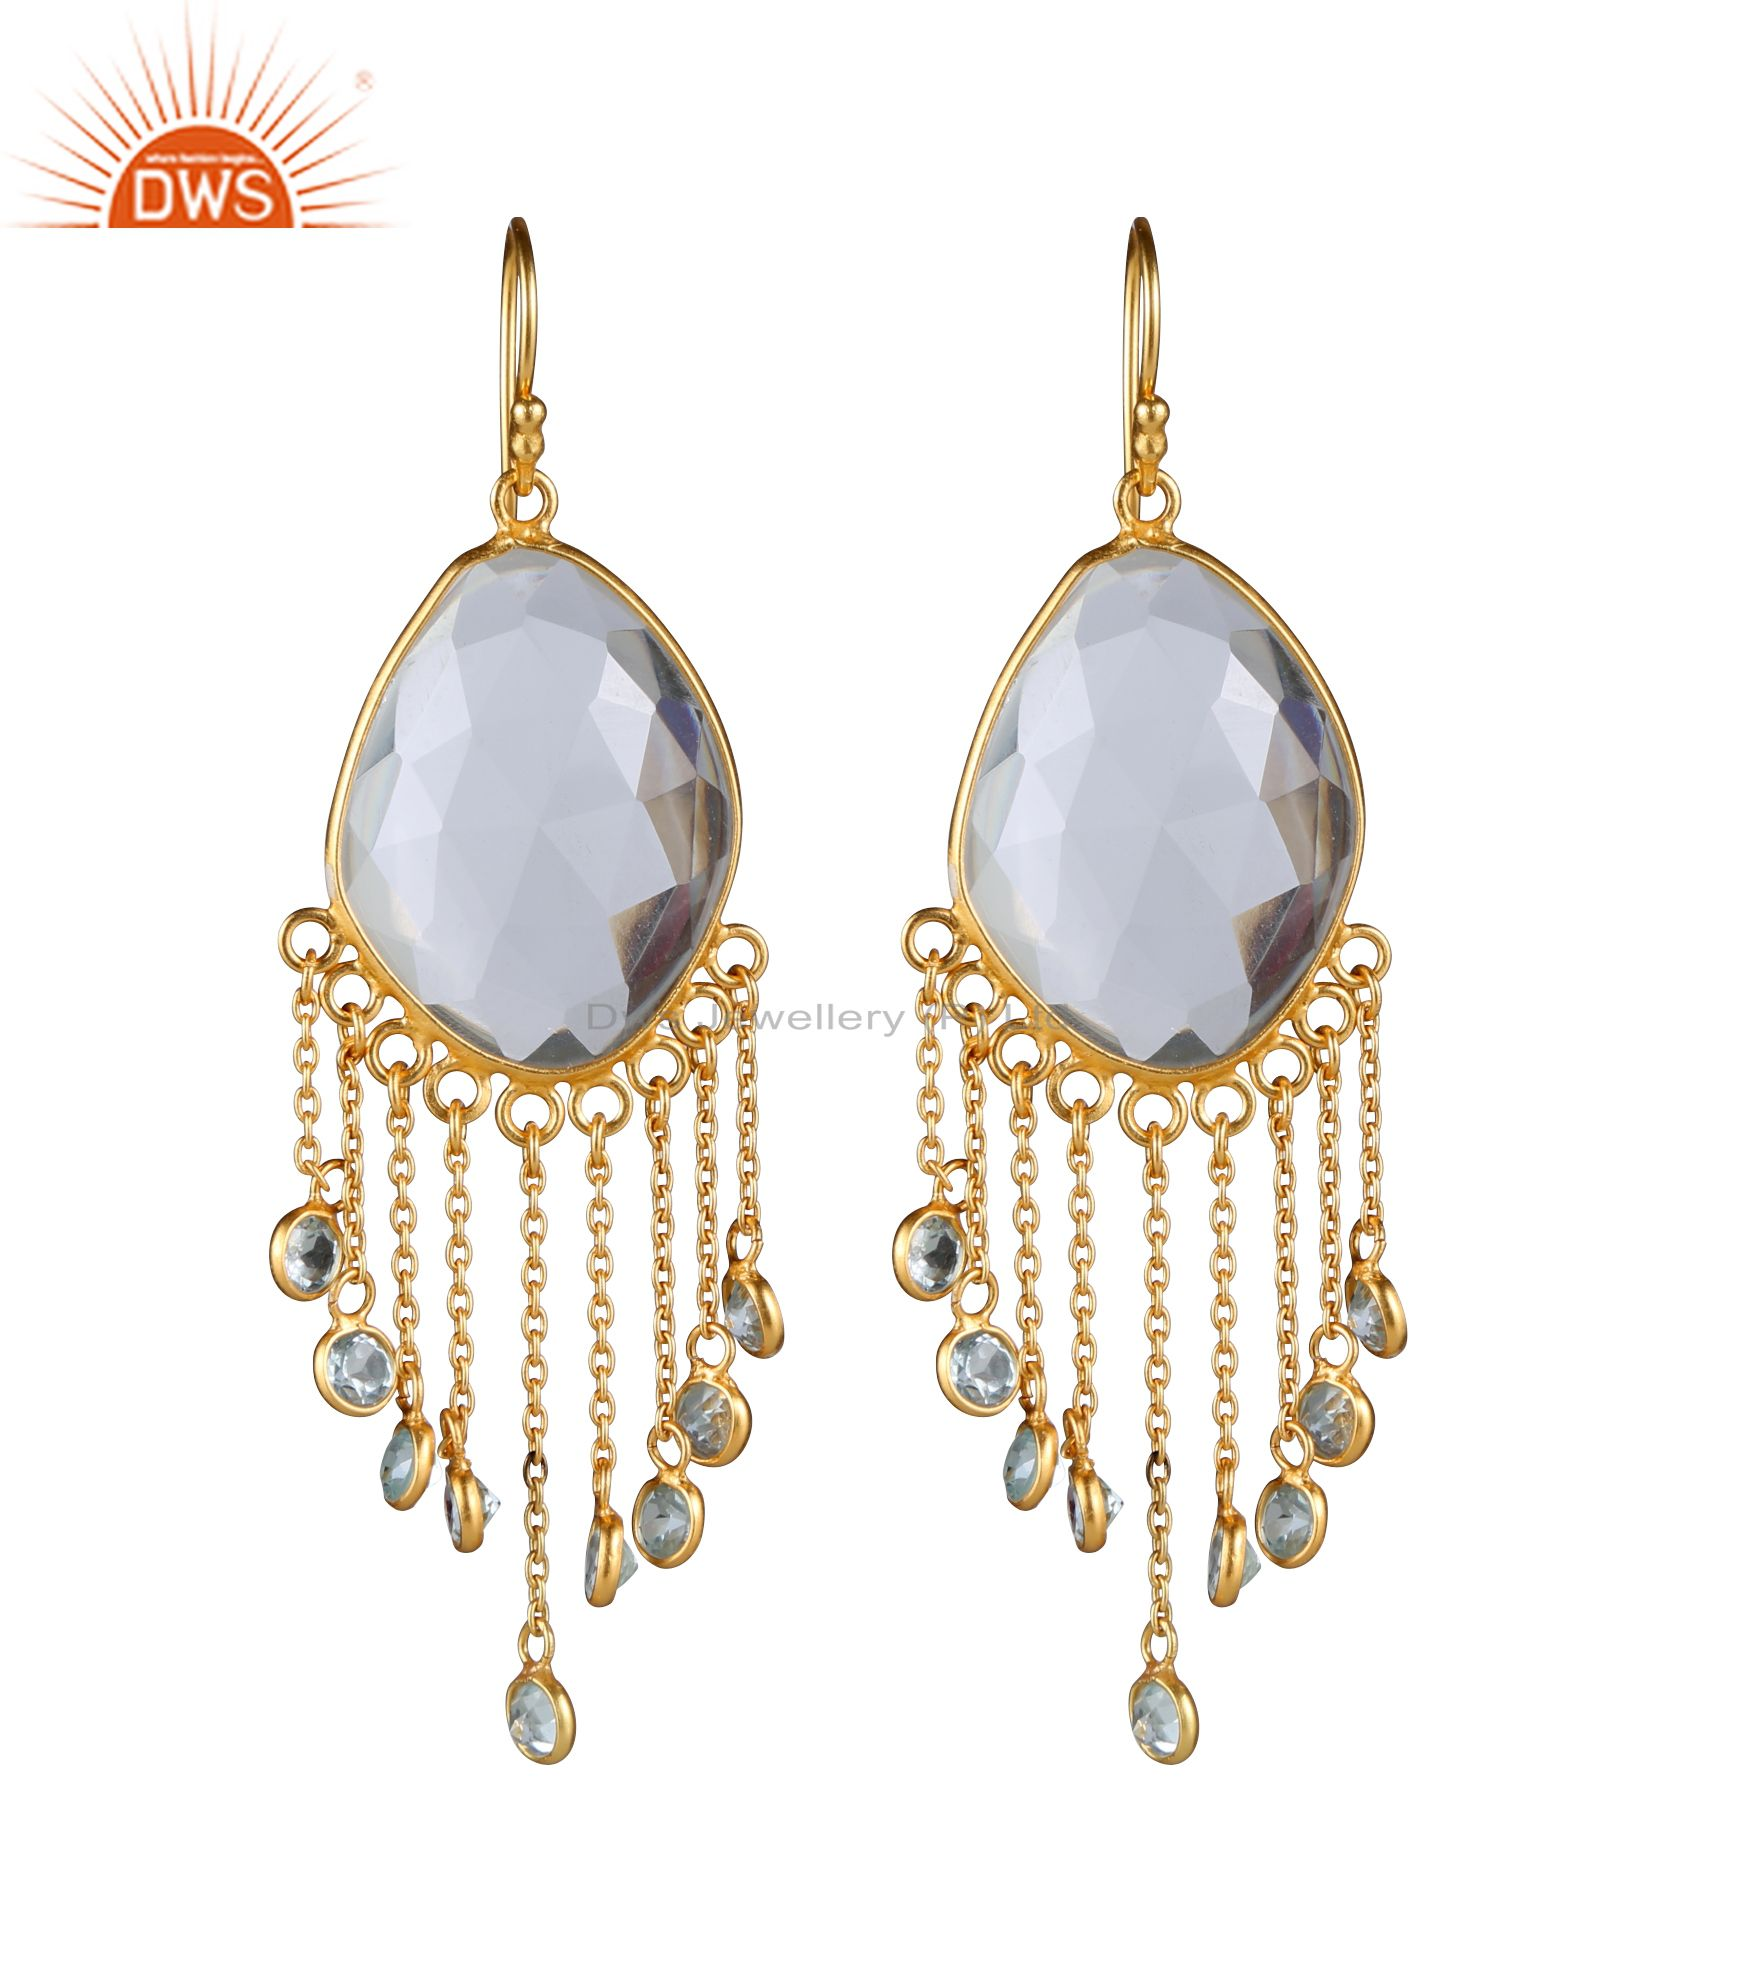 18K Gold Plated Sterling Silver Blue Topaz And Crystal Quartz Chandelier Earring